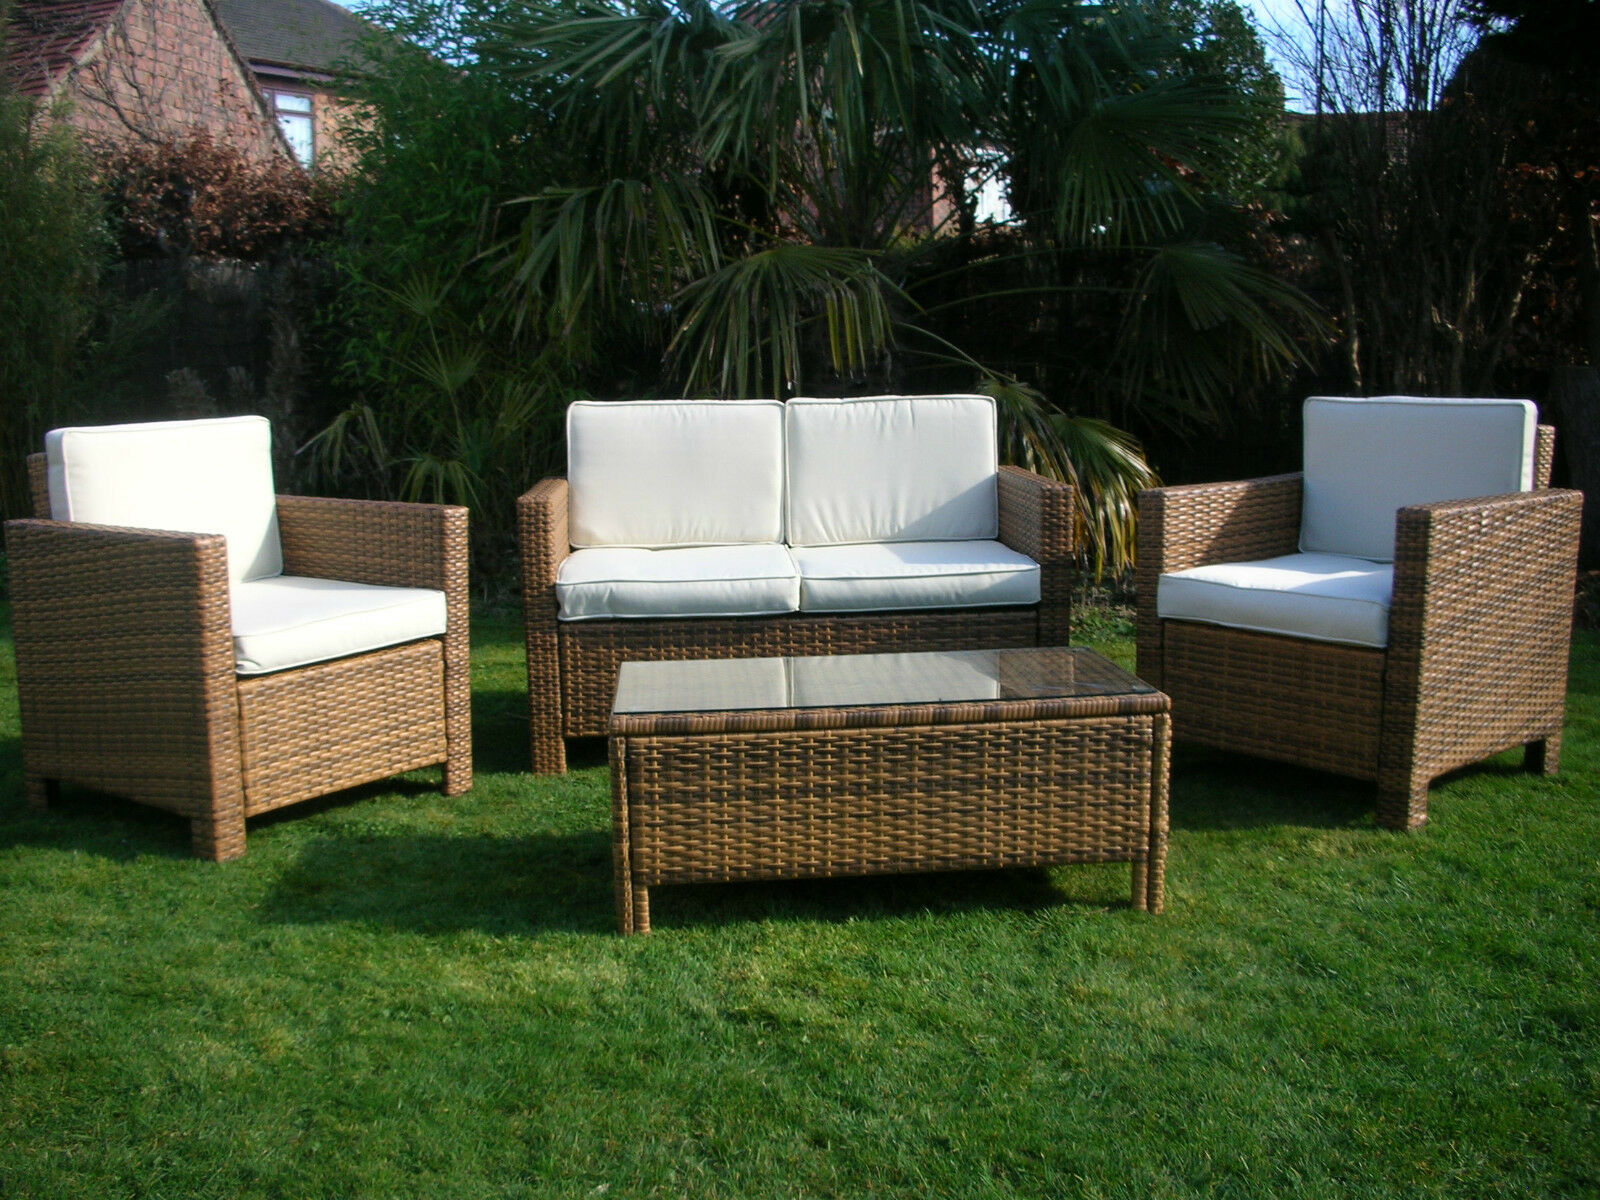 Outdoor Chair Set New Garden Rattan Wicker Outdoor Conservatory Furniture